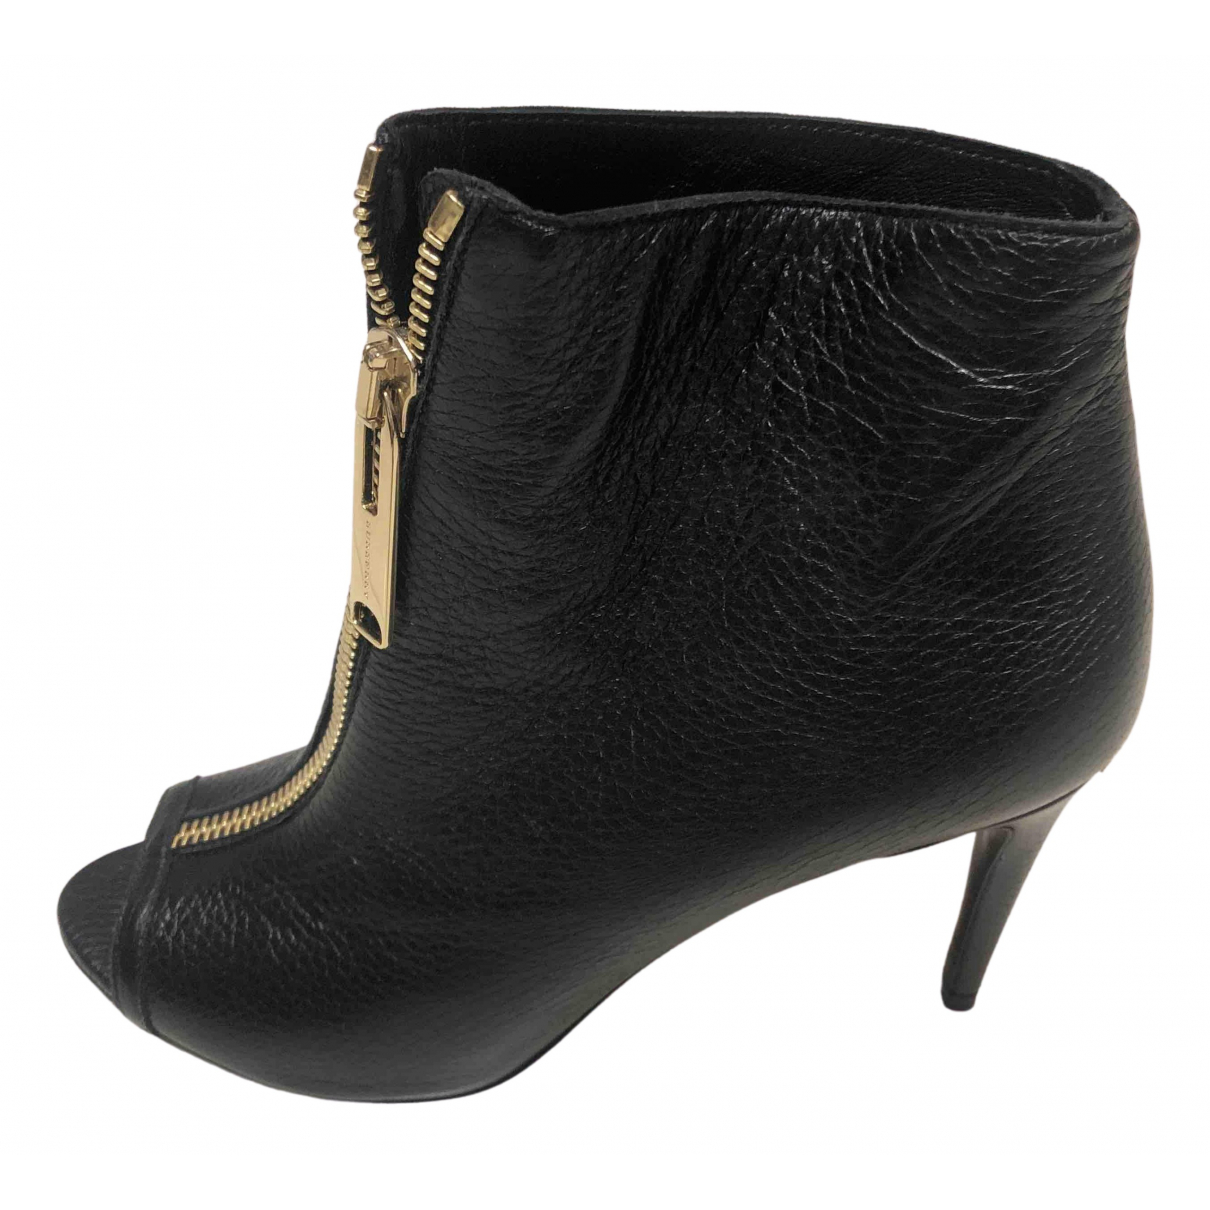 Burberry N Black Leather Ankle boots for Women 40 EU